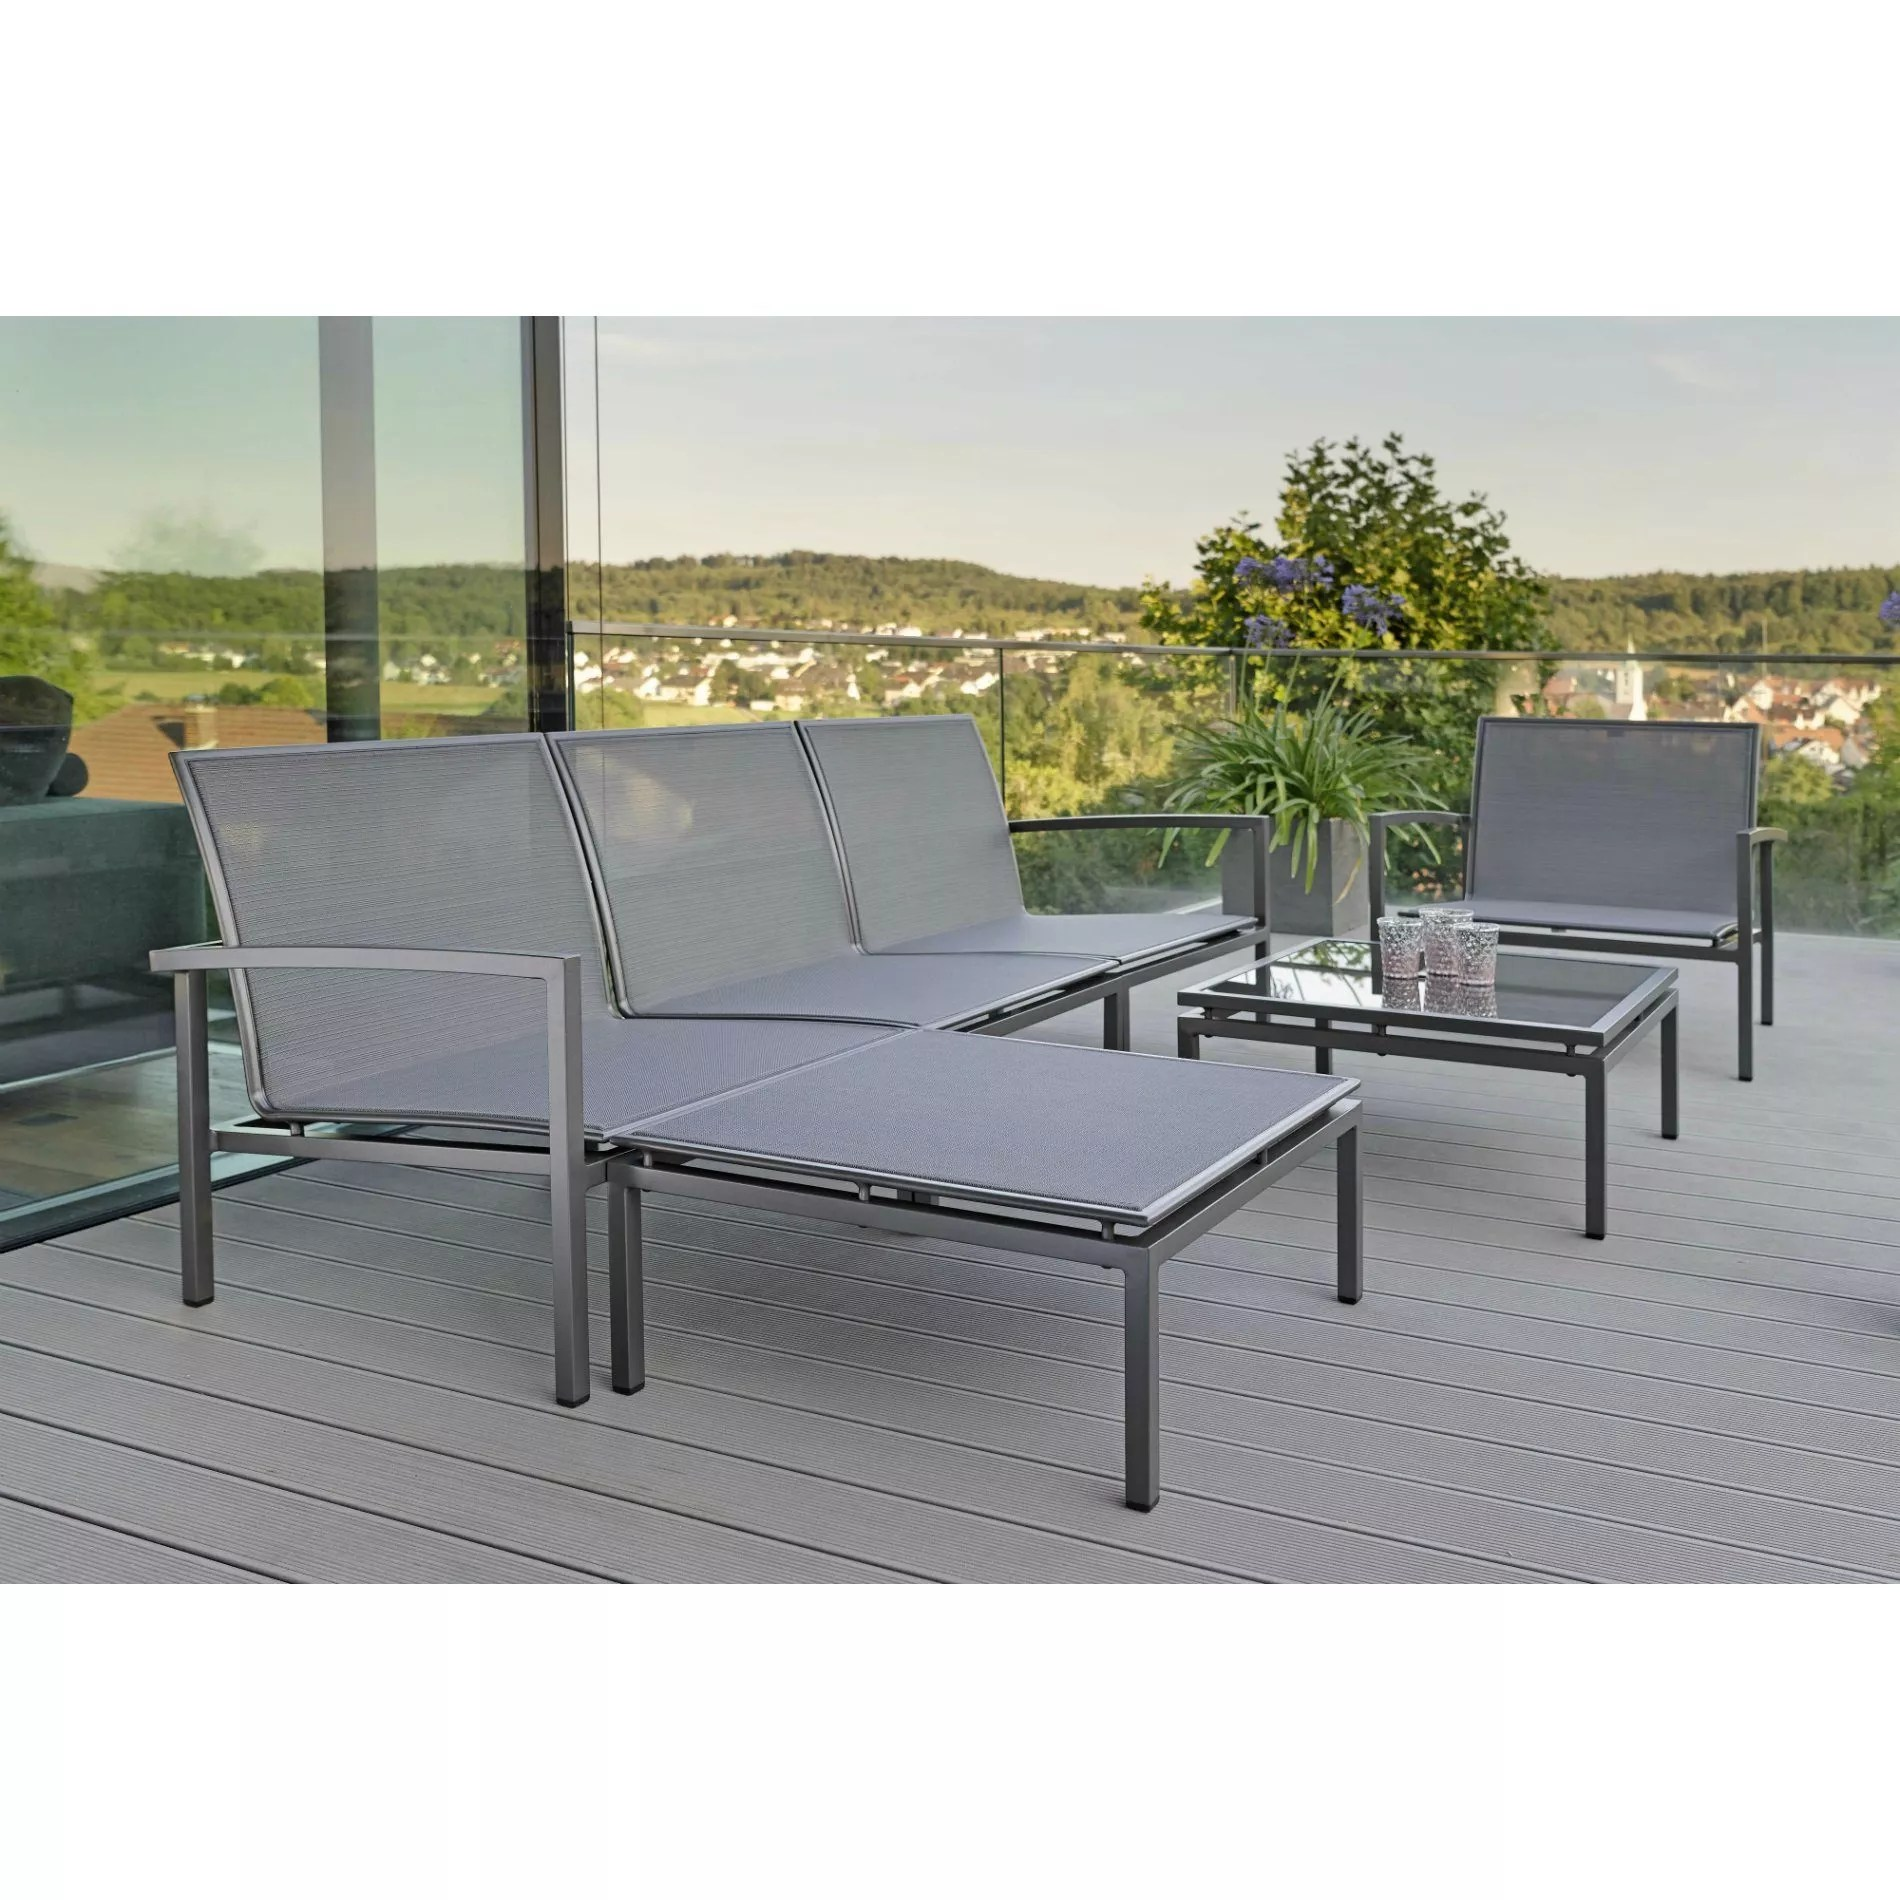 Stern Quot Skelby Quot Loungeset 6 Tlg Gestell Aluminium Anthrazit